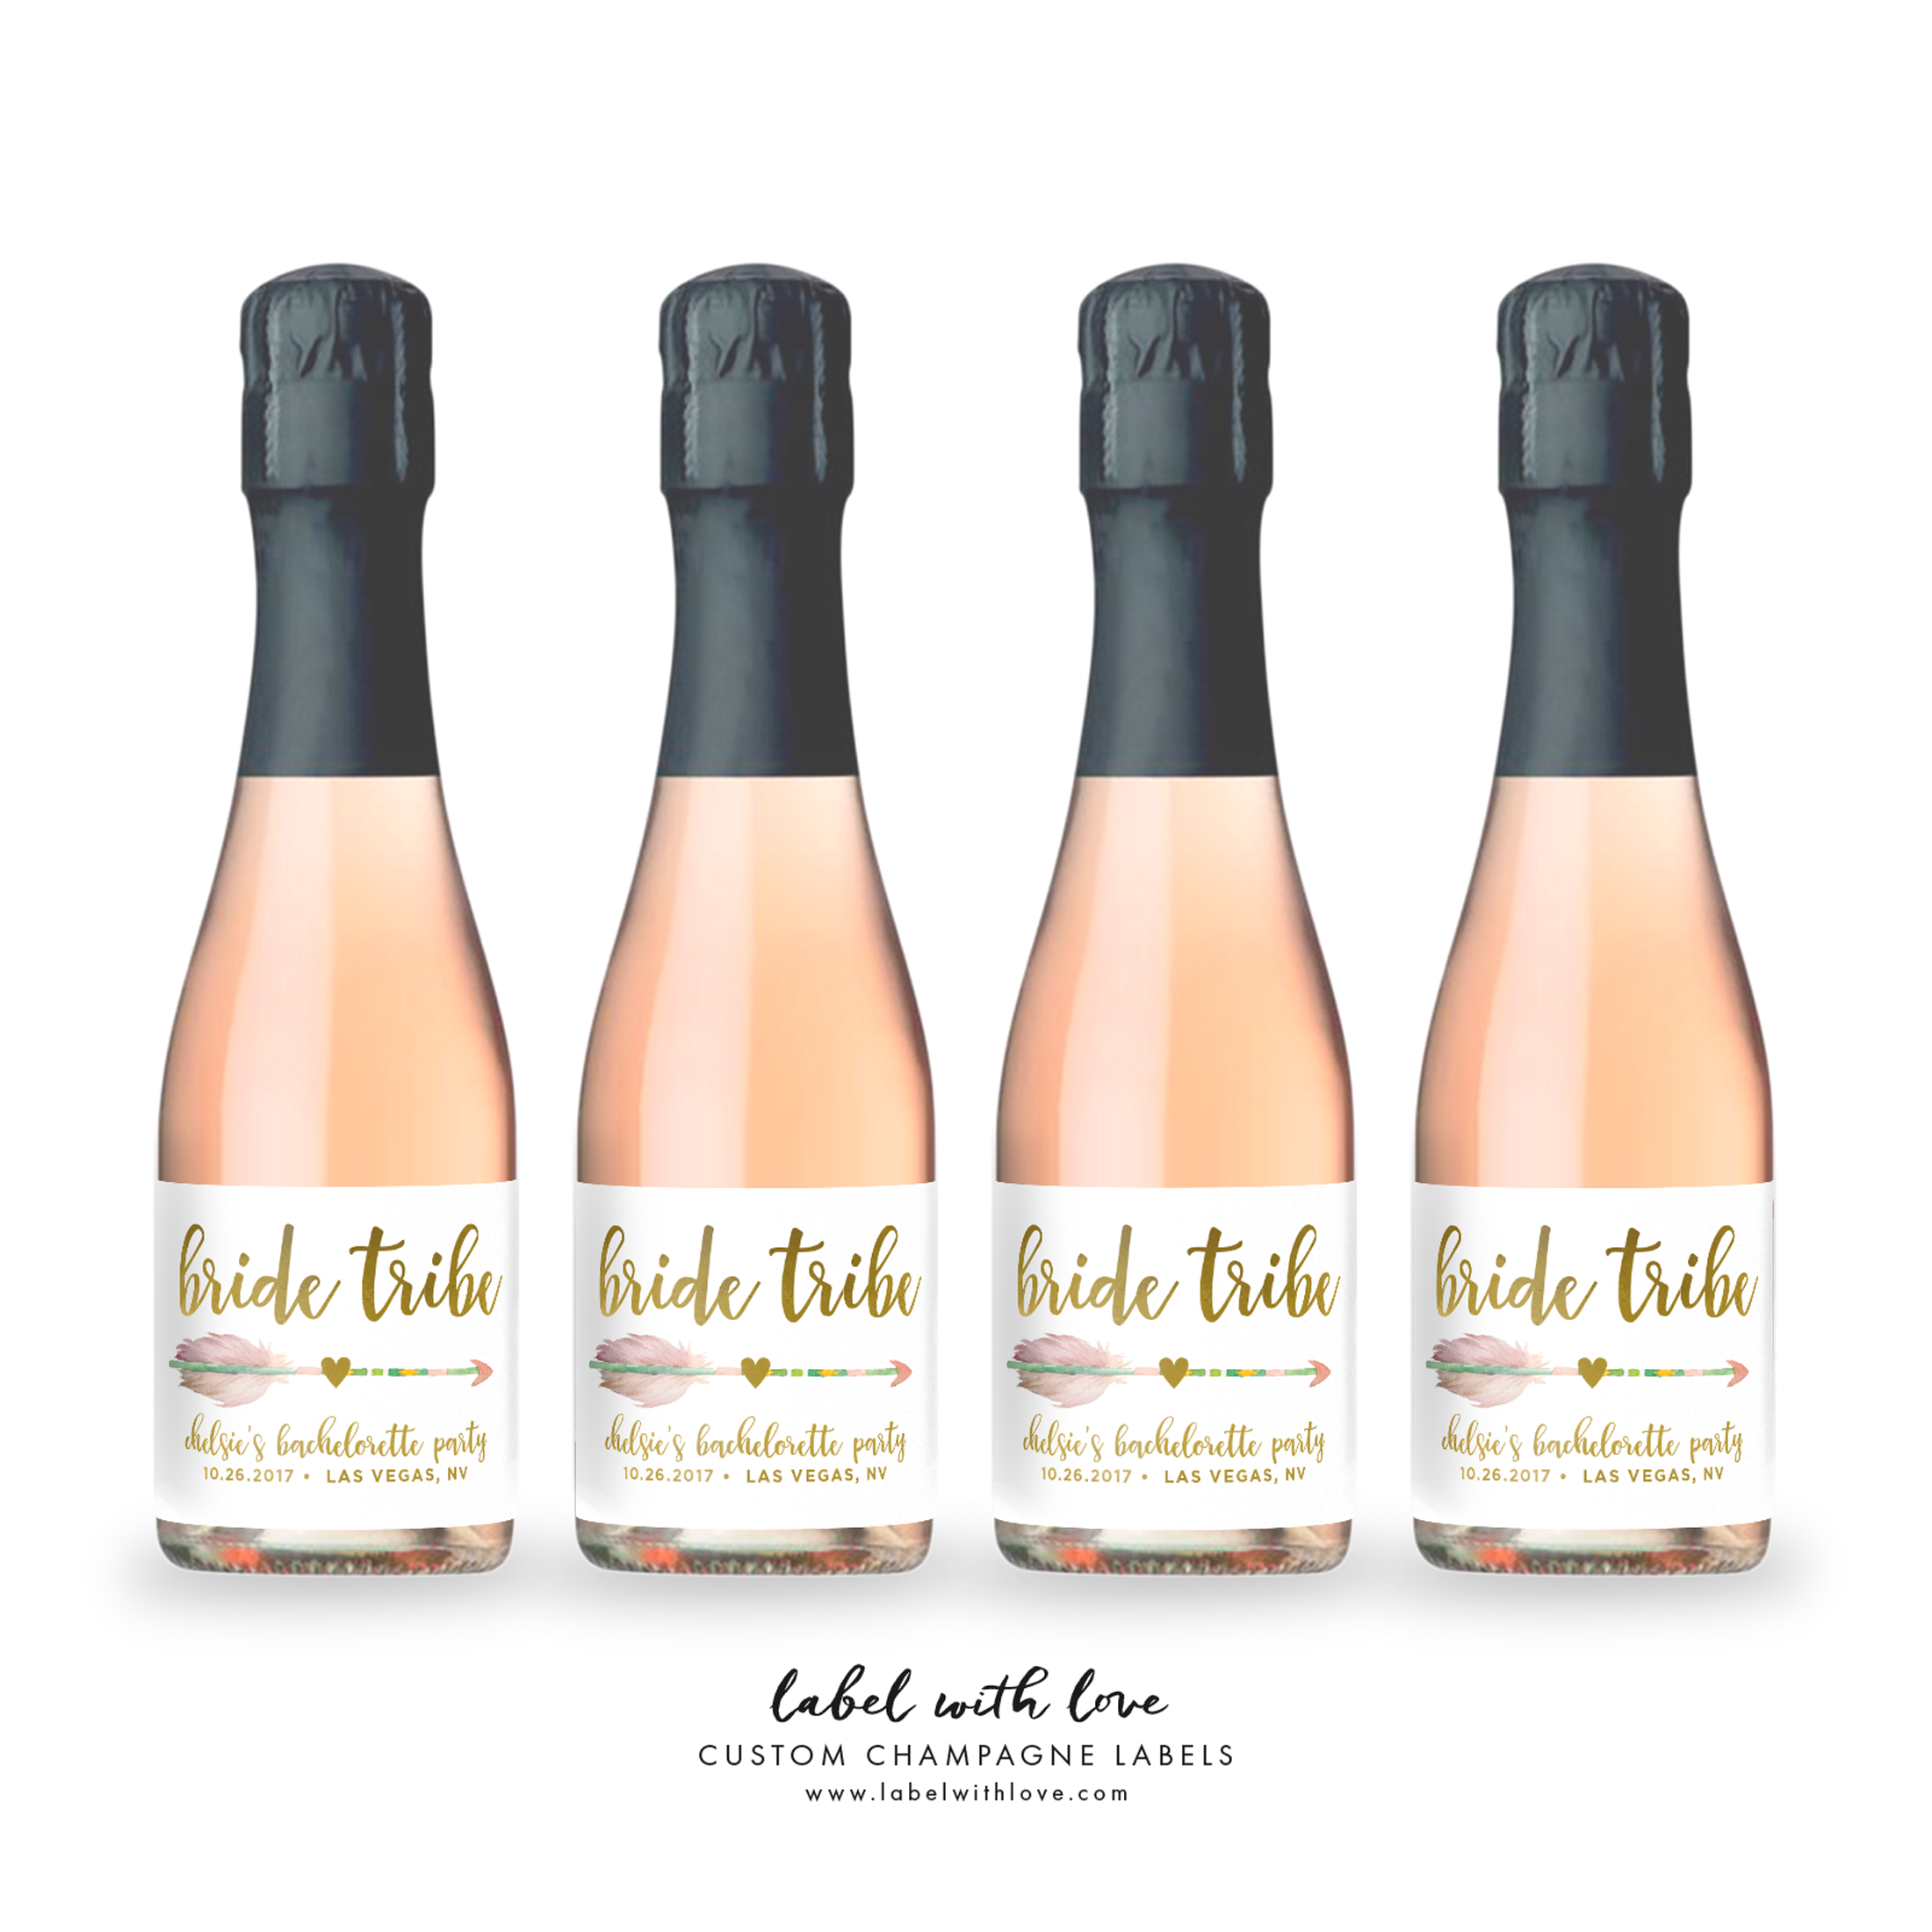 Bride Tribe Mini Champagne Labels - great for Bachelorette Party Favors by Label with Love